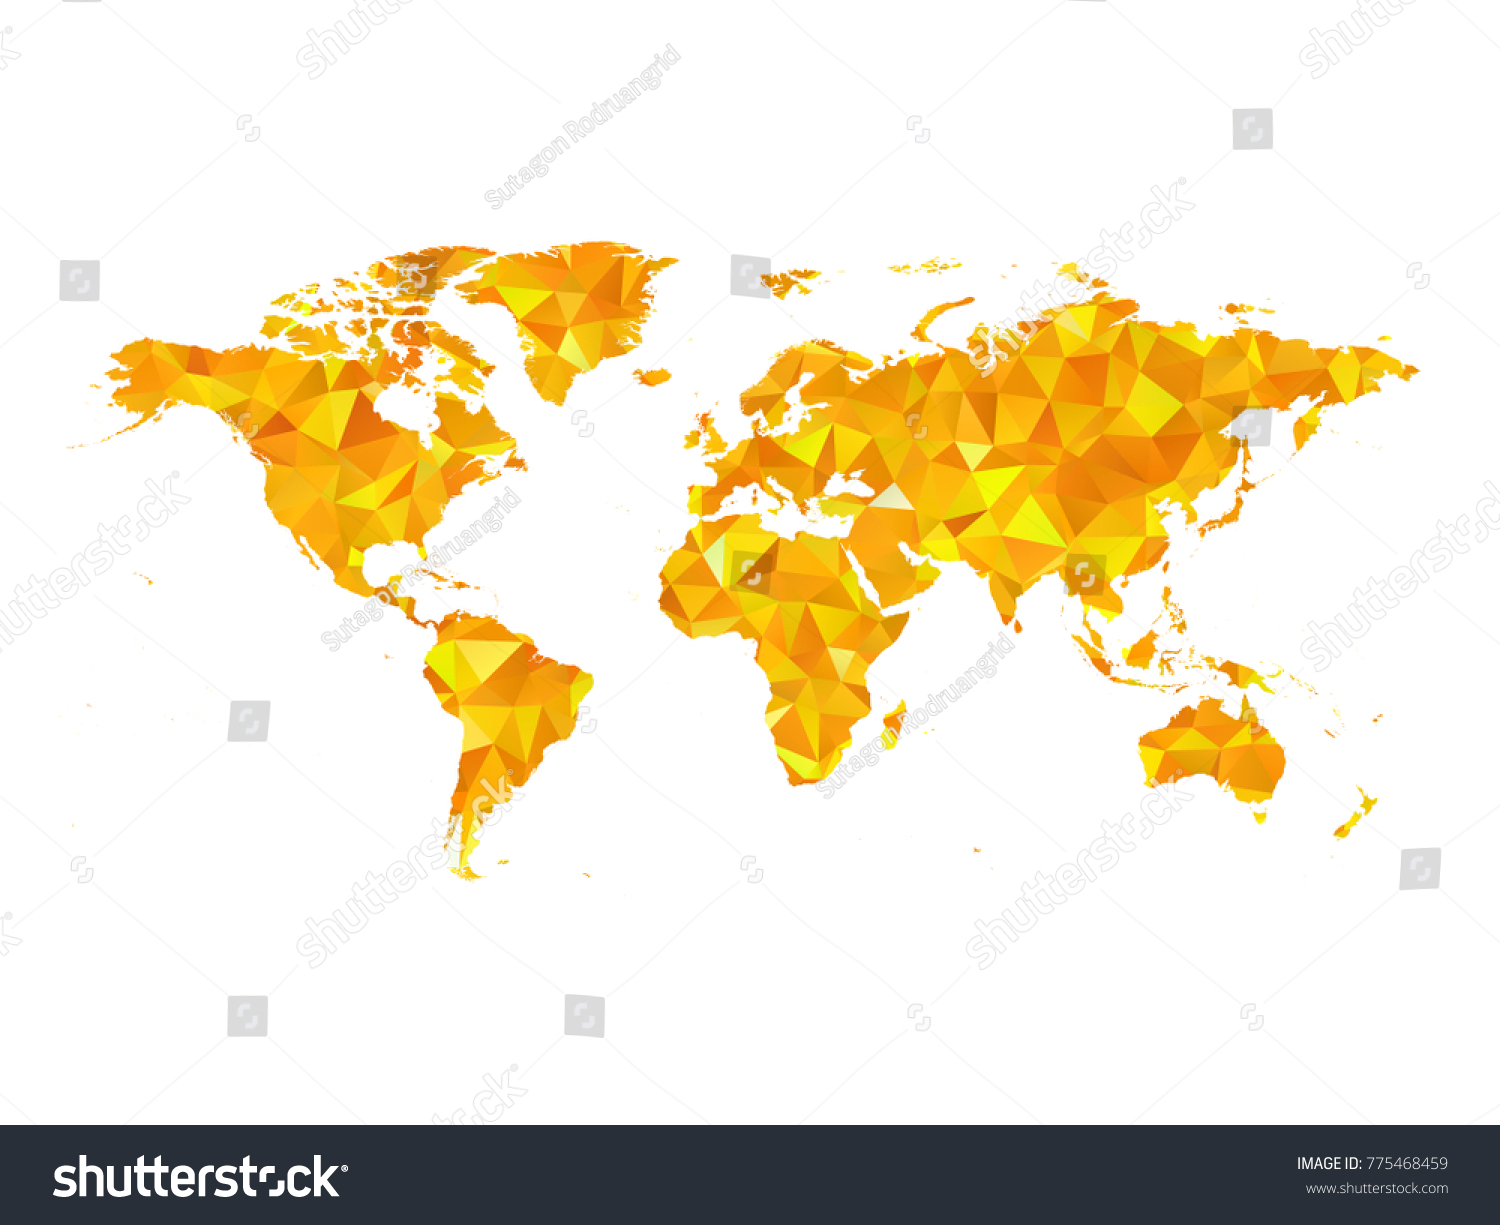 Yellow colors low polygon style world stock vector 775468459 yellow colors low polygon style world map vector eps10 gumiabroncs Image collections